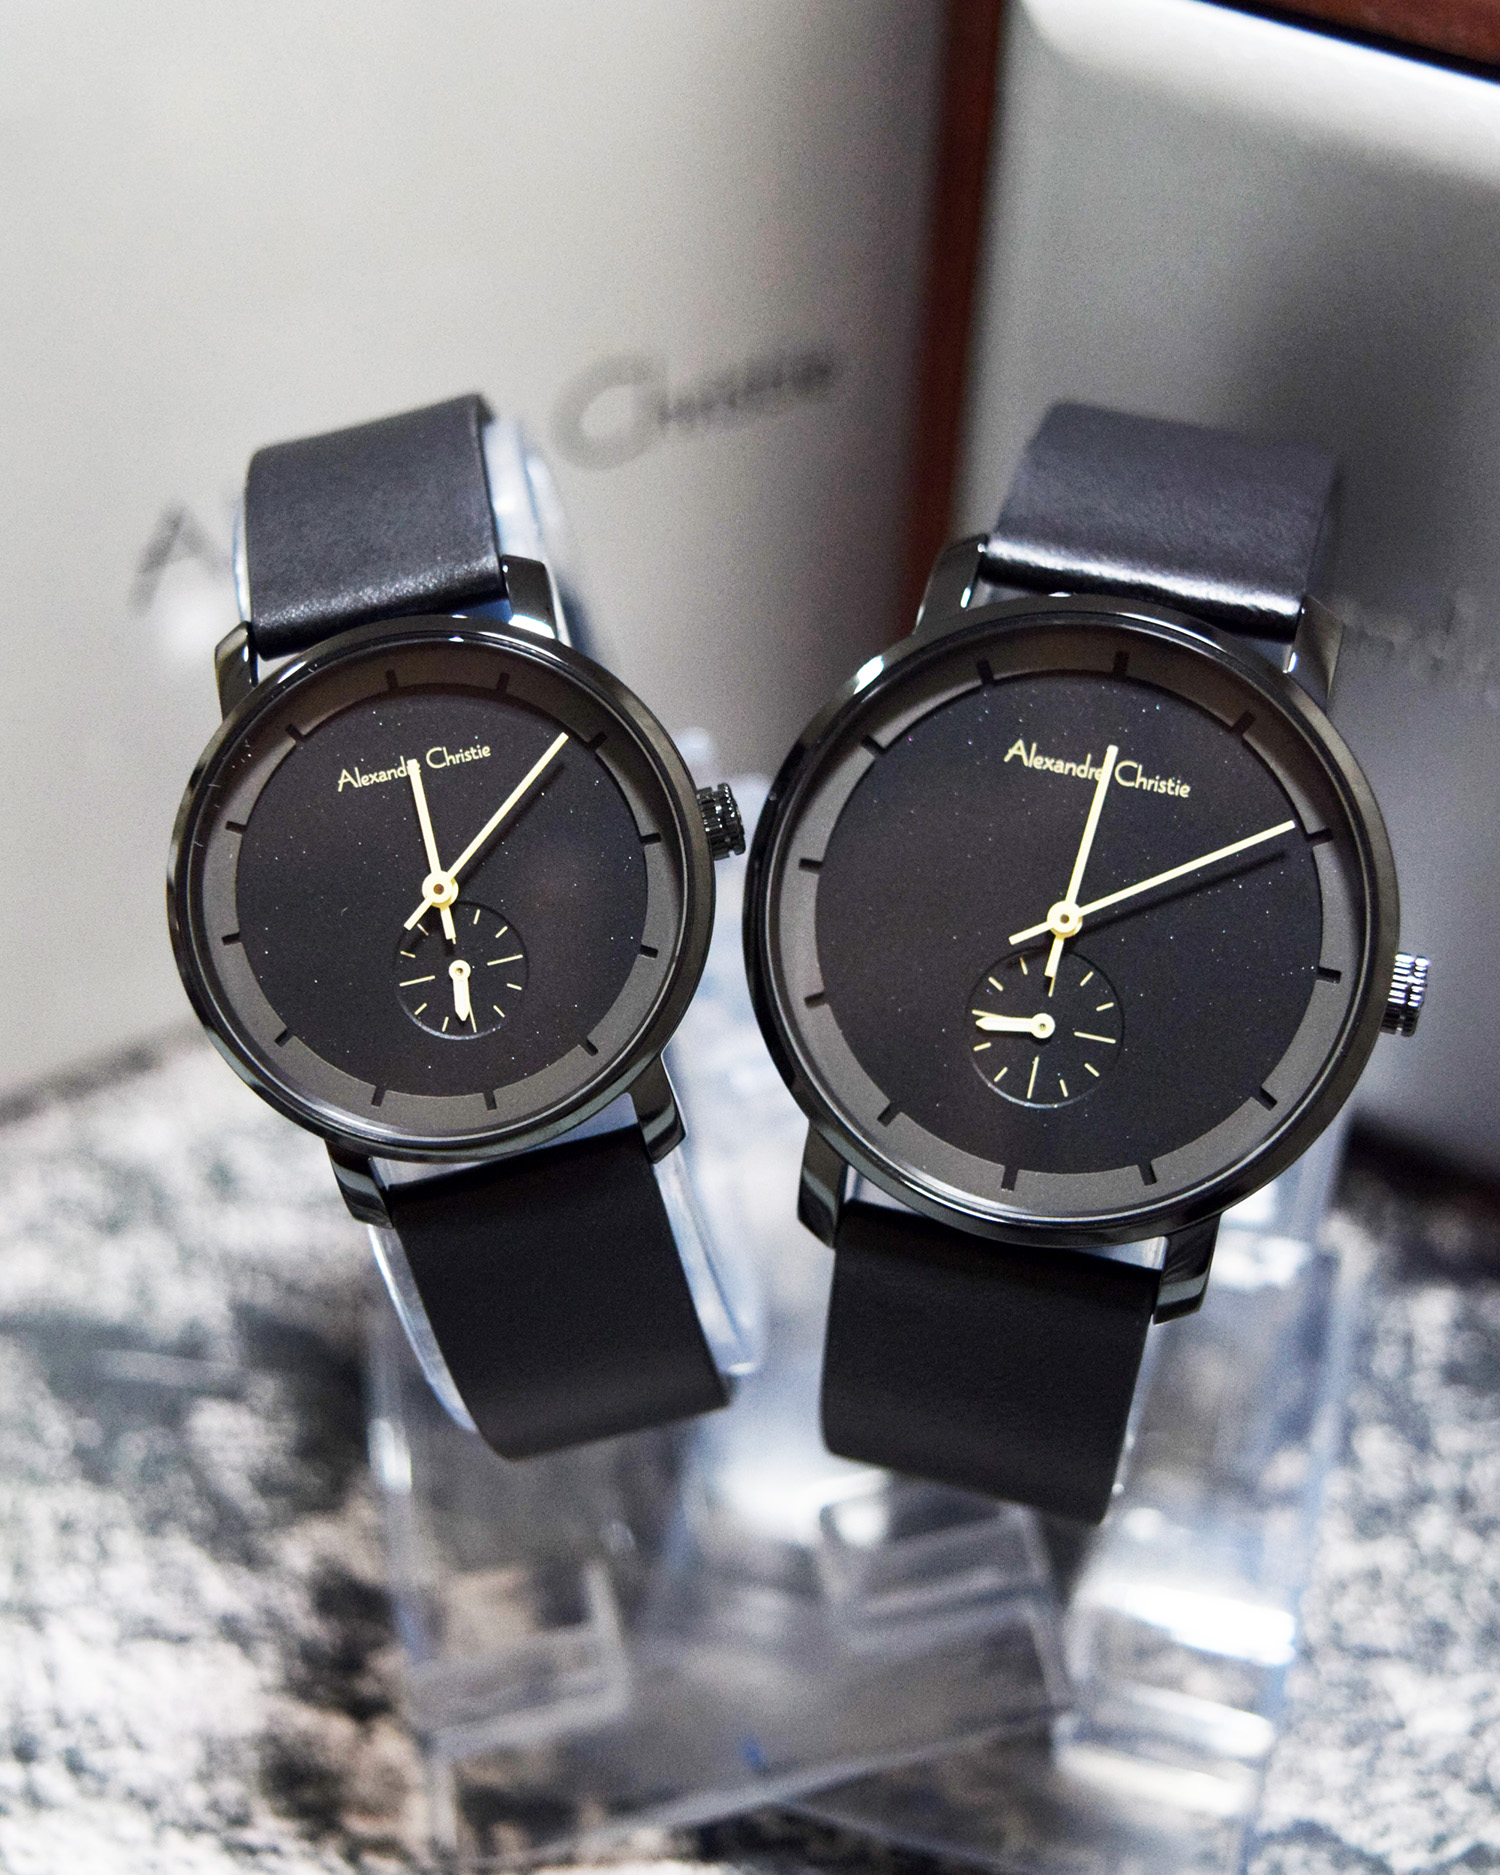 Alexandre Christie Jam Tangan Couple Leather Strap Ac 8485 Black Pria Expedition 6339 Mclipbasl Original Jual Full Anita Watches Tokopedia